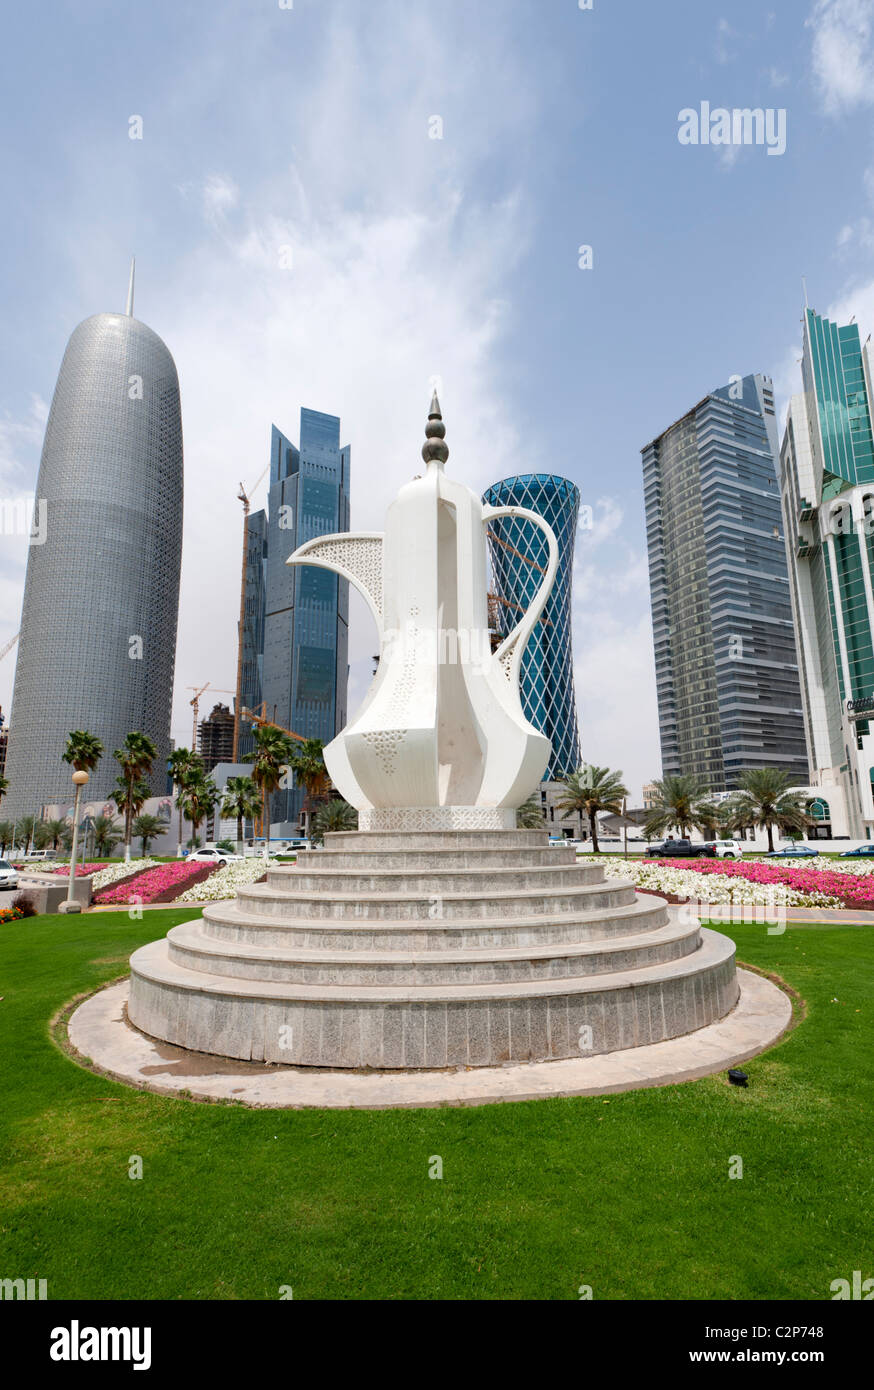 Tea pot monument and  skyline of office towers in business district of Doha in Qatar, Middle East - Stock Image